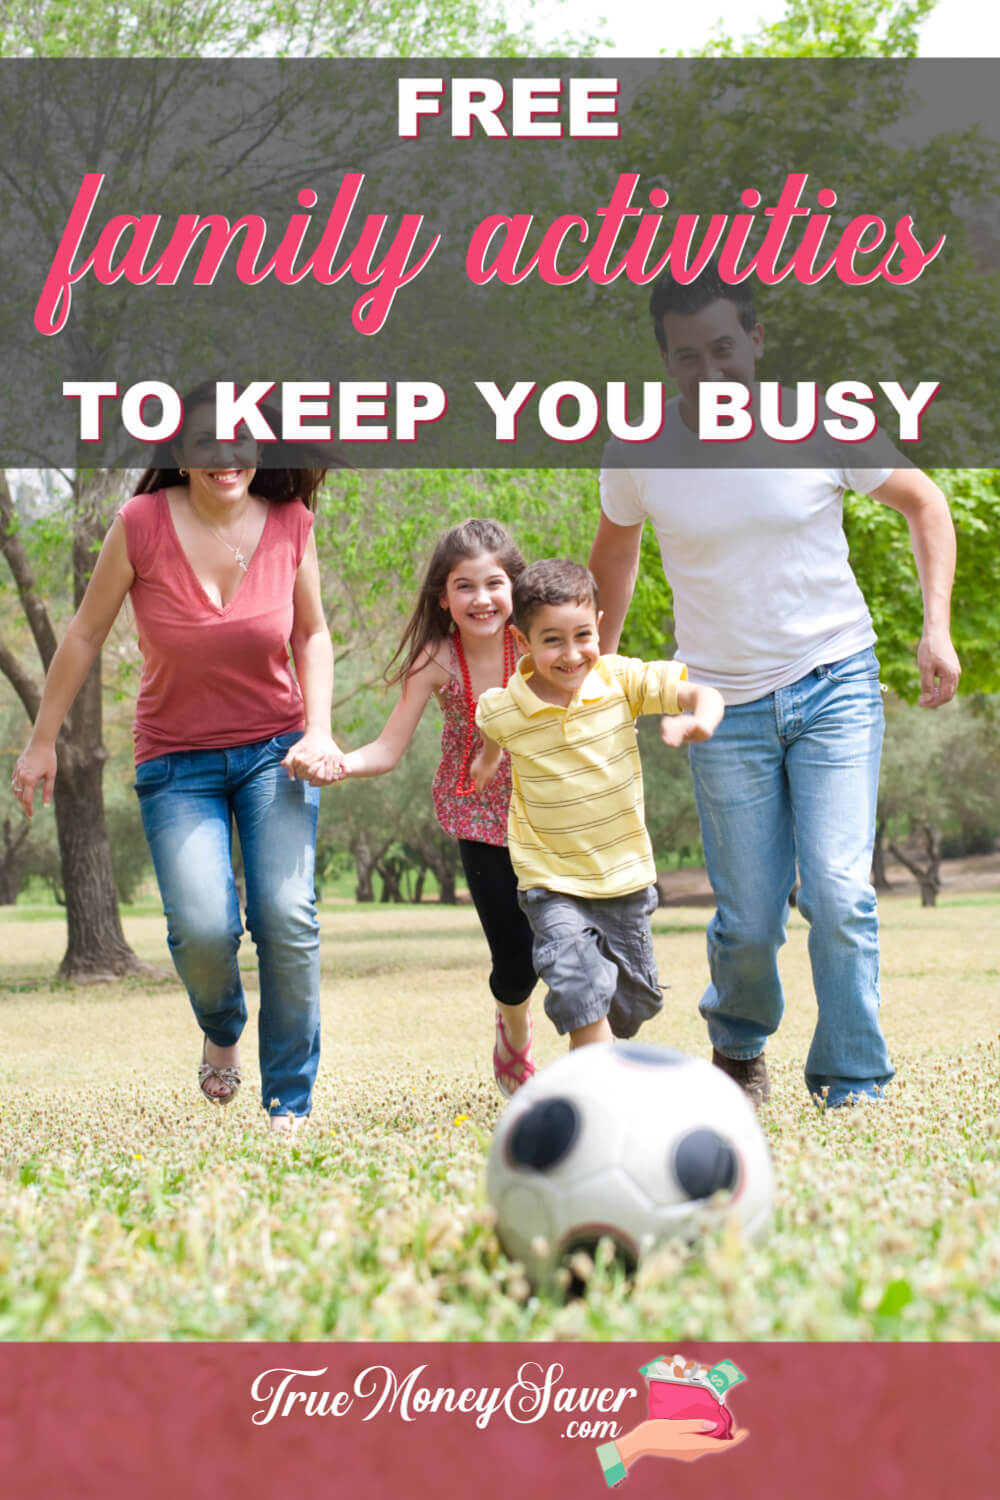 Looking for some free family activities? I\'ve got the best things to do for free family activities plus quality family time ideas. Start with these FREE fun family activities at home today! #truemoneysaver #familyfun #familyfunday #familyfuntime #familyfuntonight #familyfuntimes #familyfundays #familyfunfest #familyfunrun #familyfuninthesun #familyfunweekend #familyfungames #familyfunideas